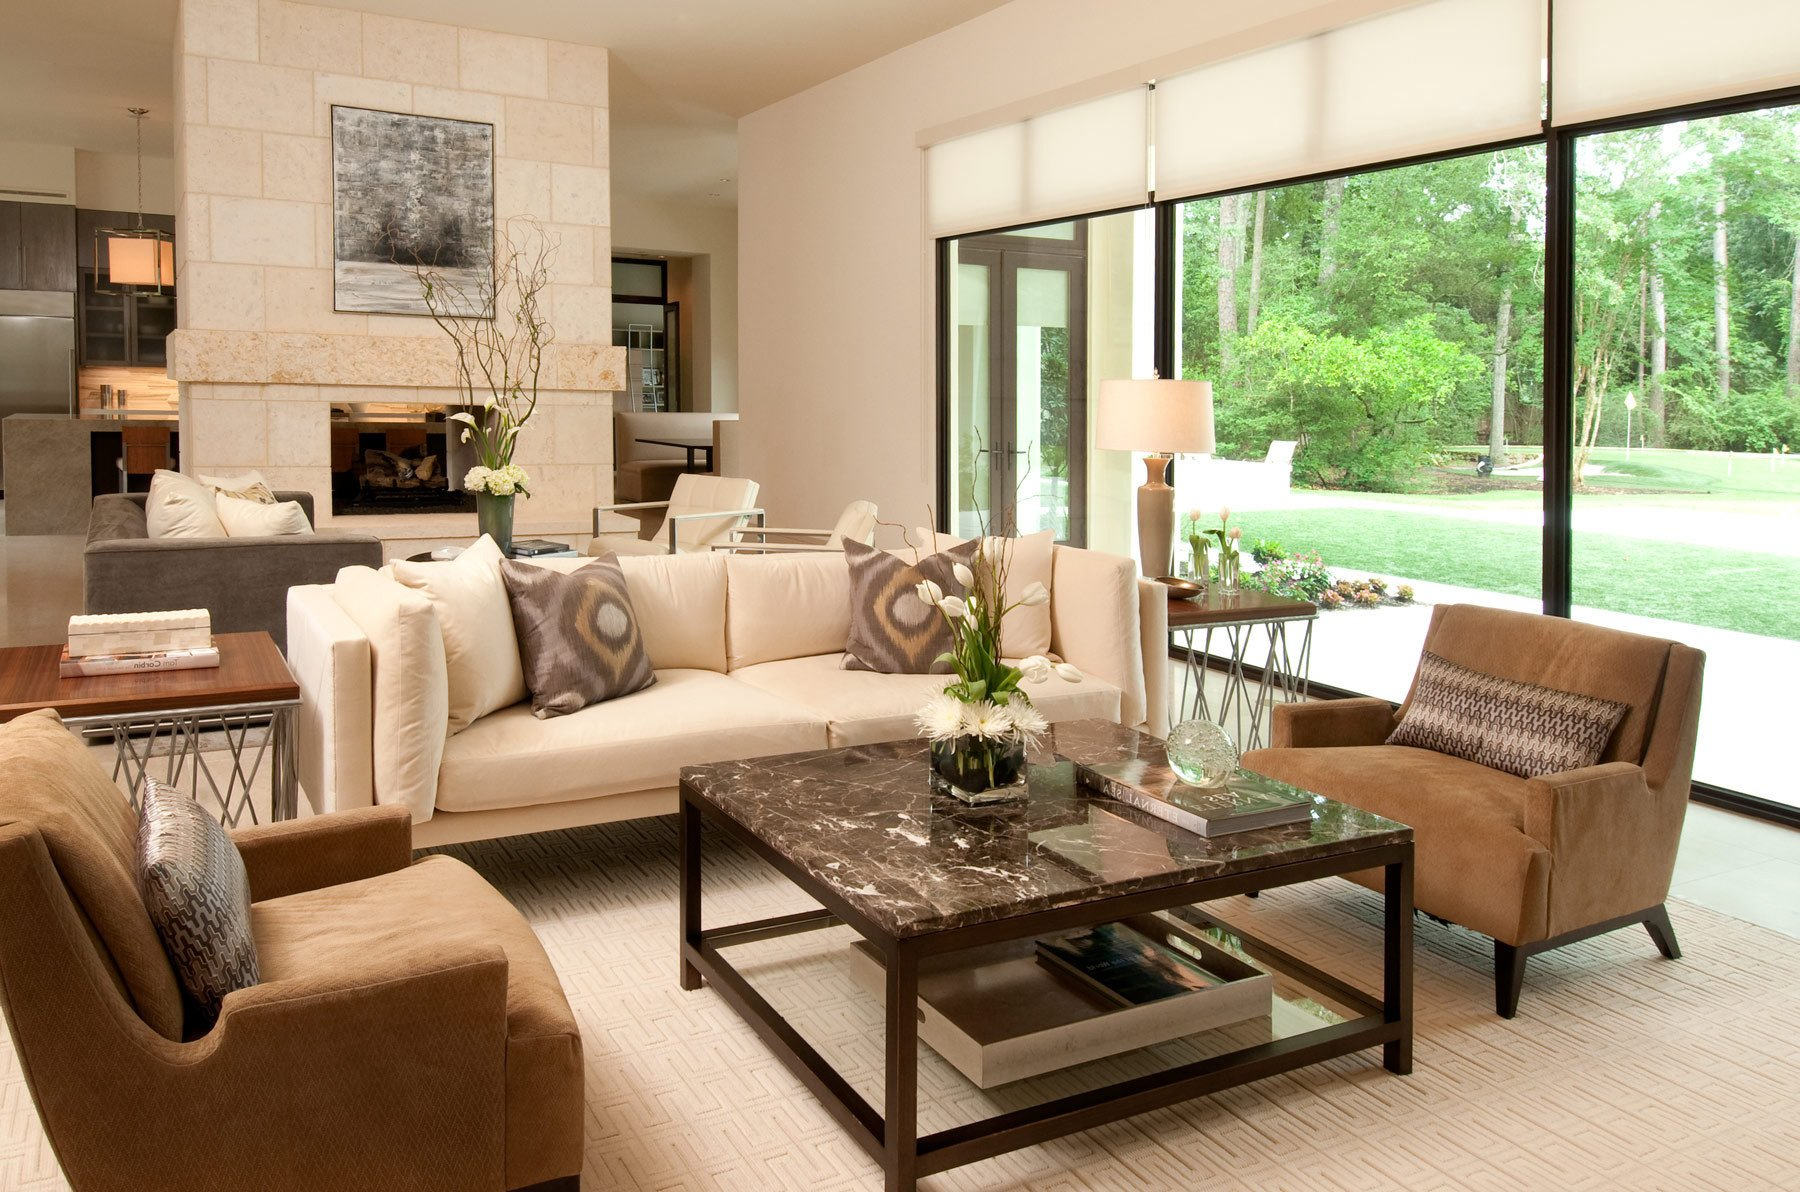 Comfortable Classic Living Room Lovely Cozy and fortable American Living Room Interior 8001